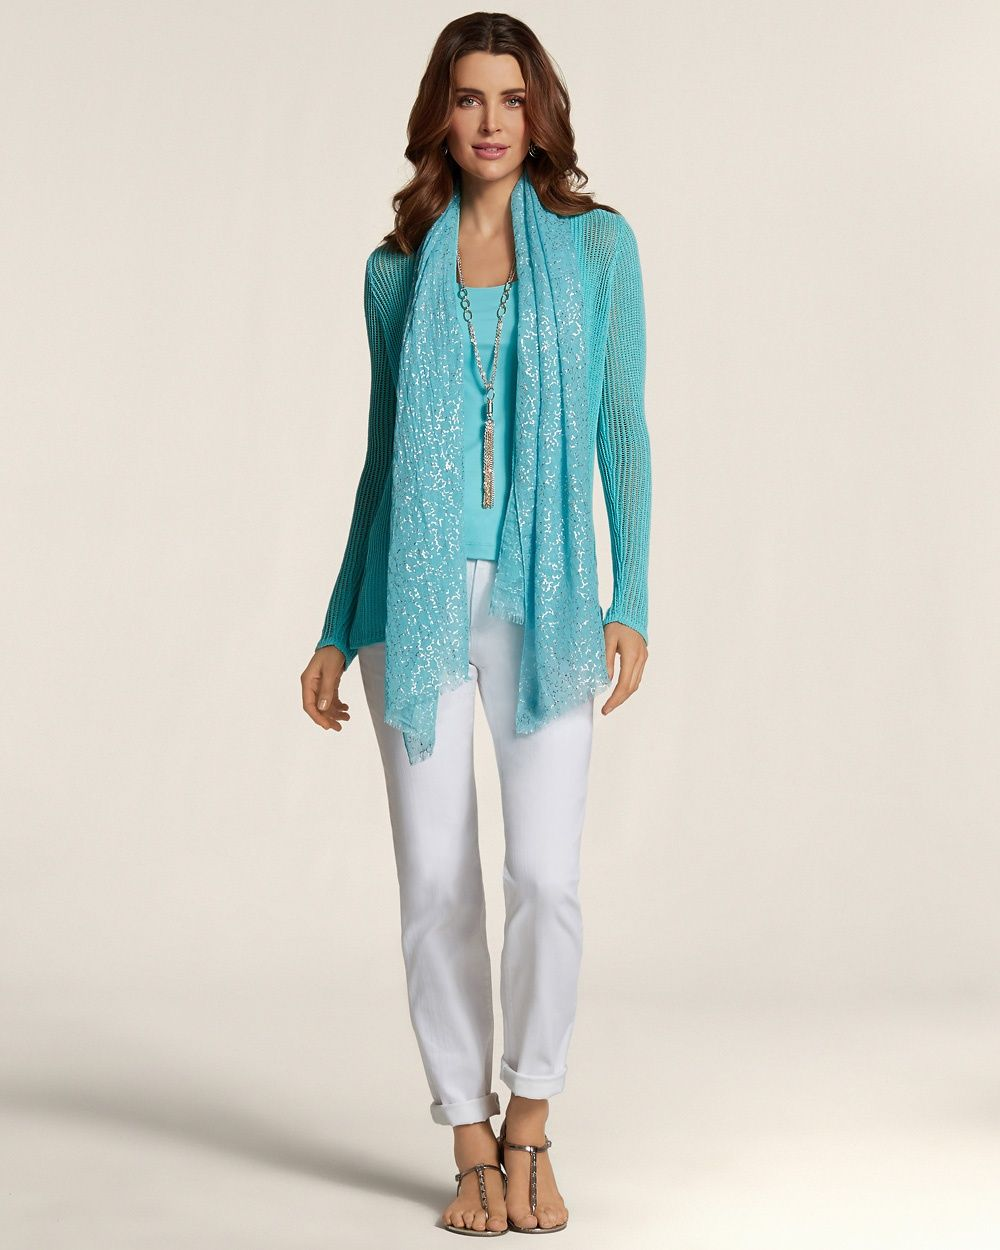 Women's New Arrivals - Clothing, Jewelry & more - Chico's